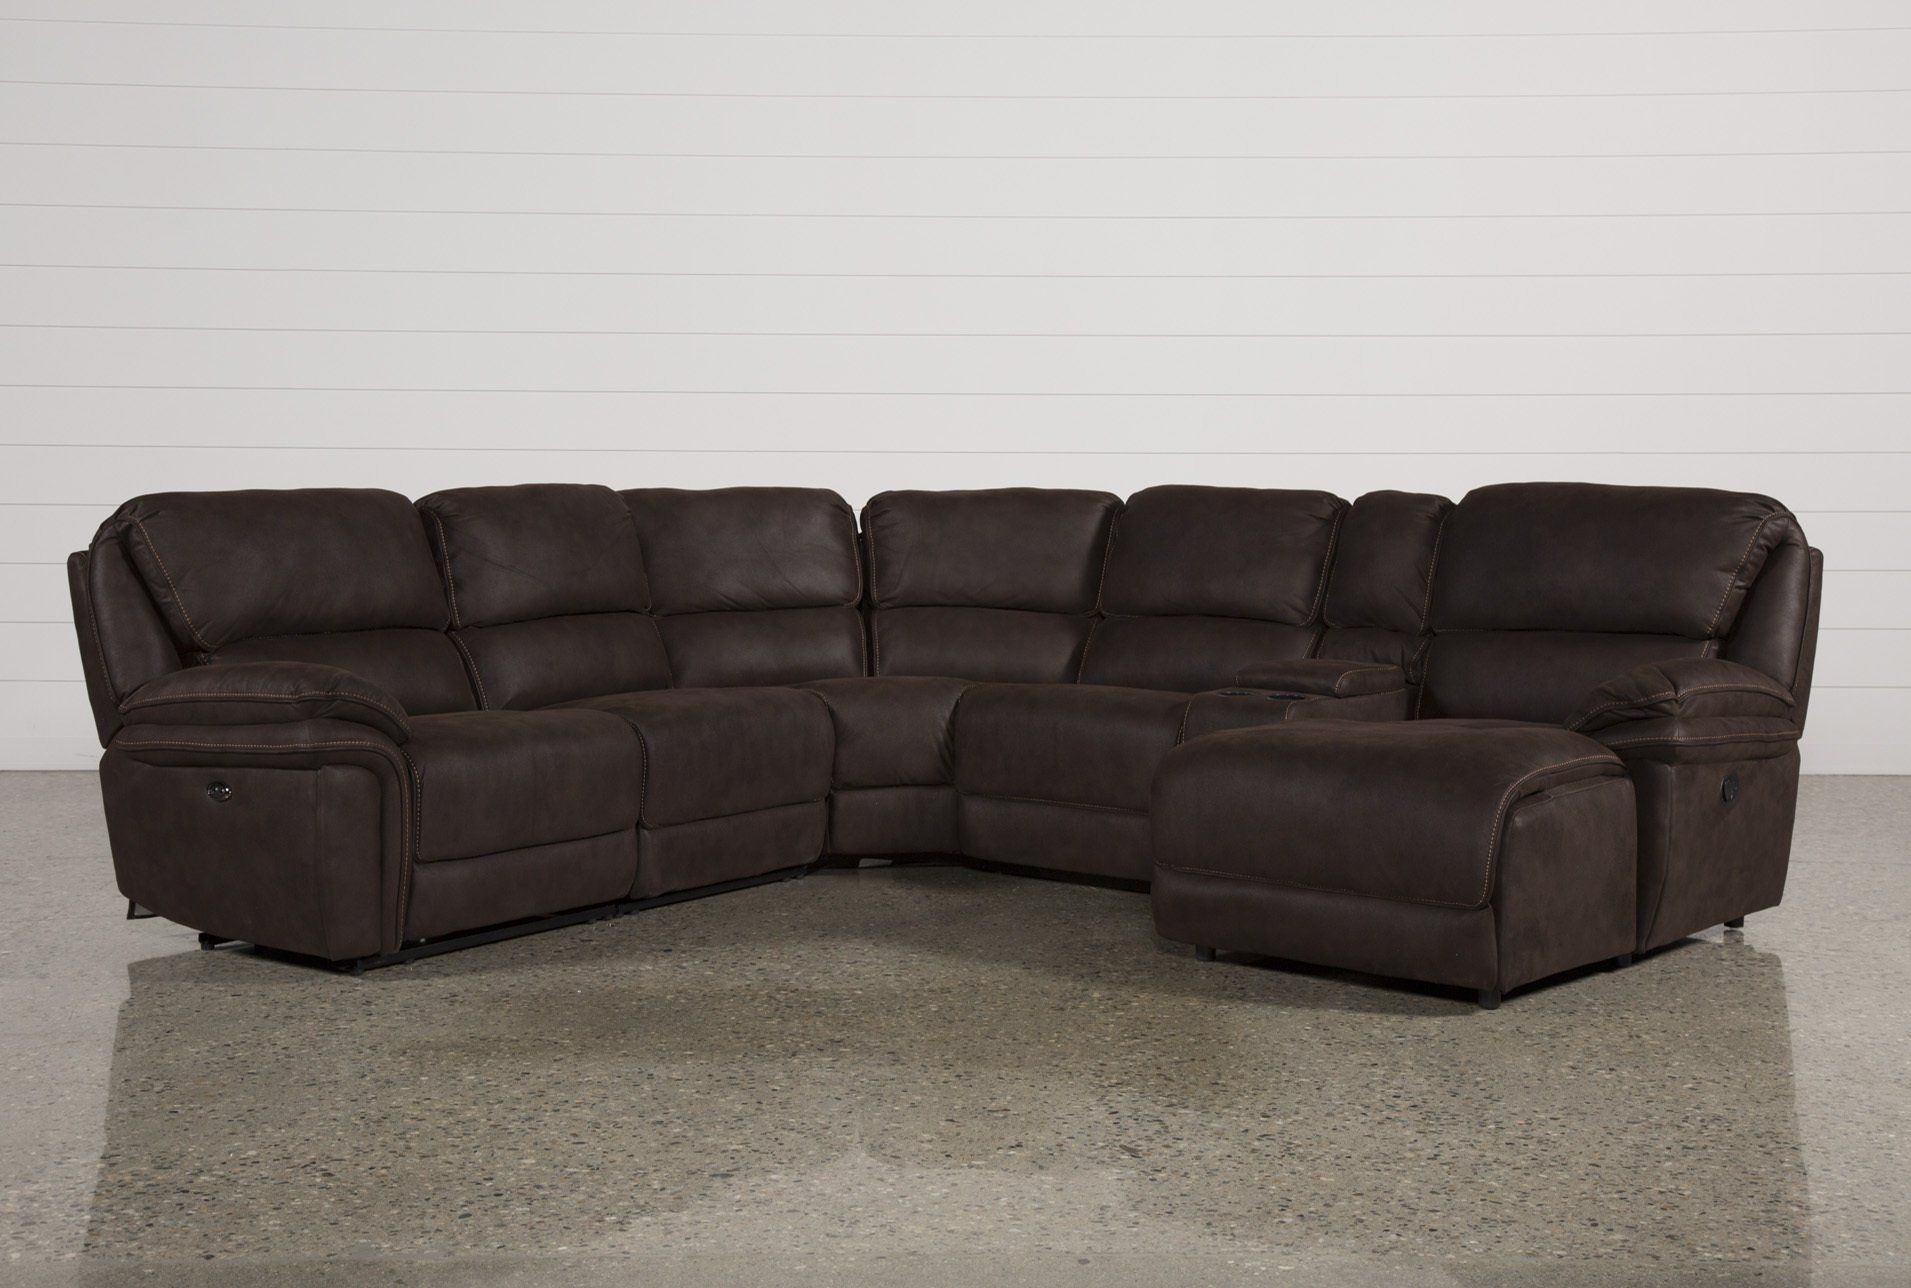 Norfolk Chocolate 6 Piece Sectional W/raf Chaise | Pinterest Pertaining To Norfolk Chocolate 6 Piece Sectionals (Photo 3 of 25)